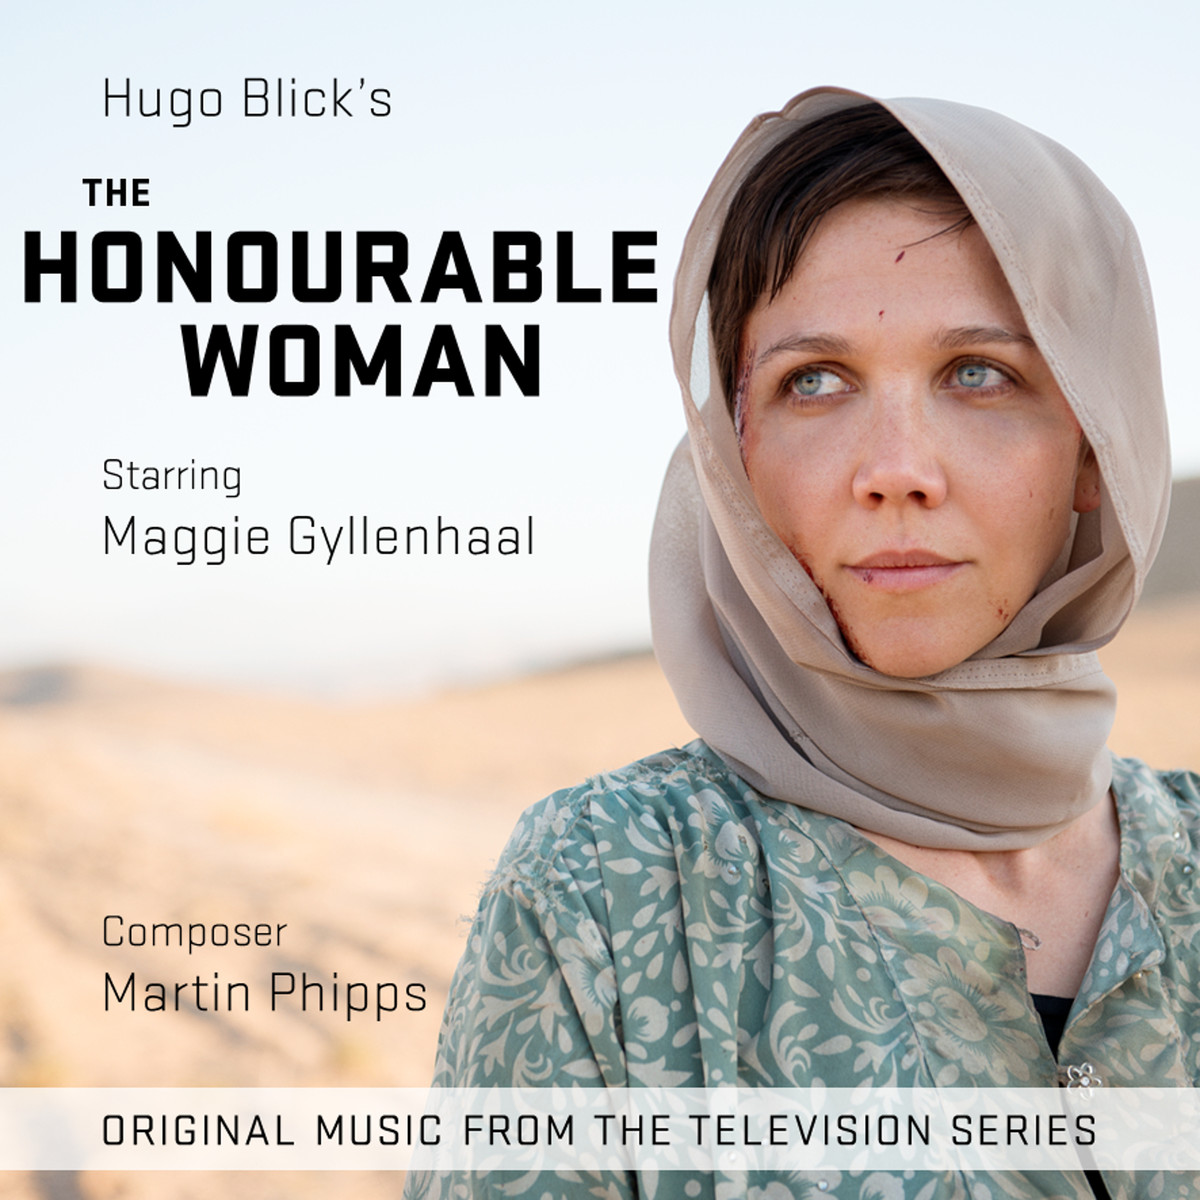 The Honourable Woman Music from the Original TV Series  Honorable